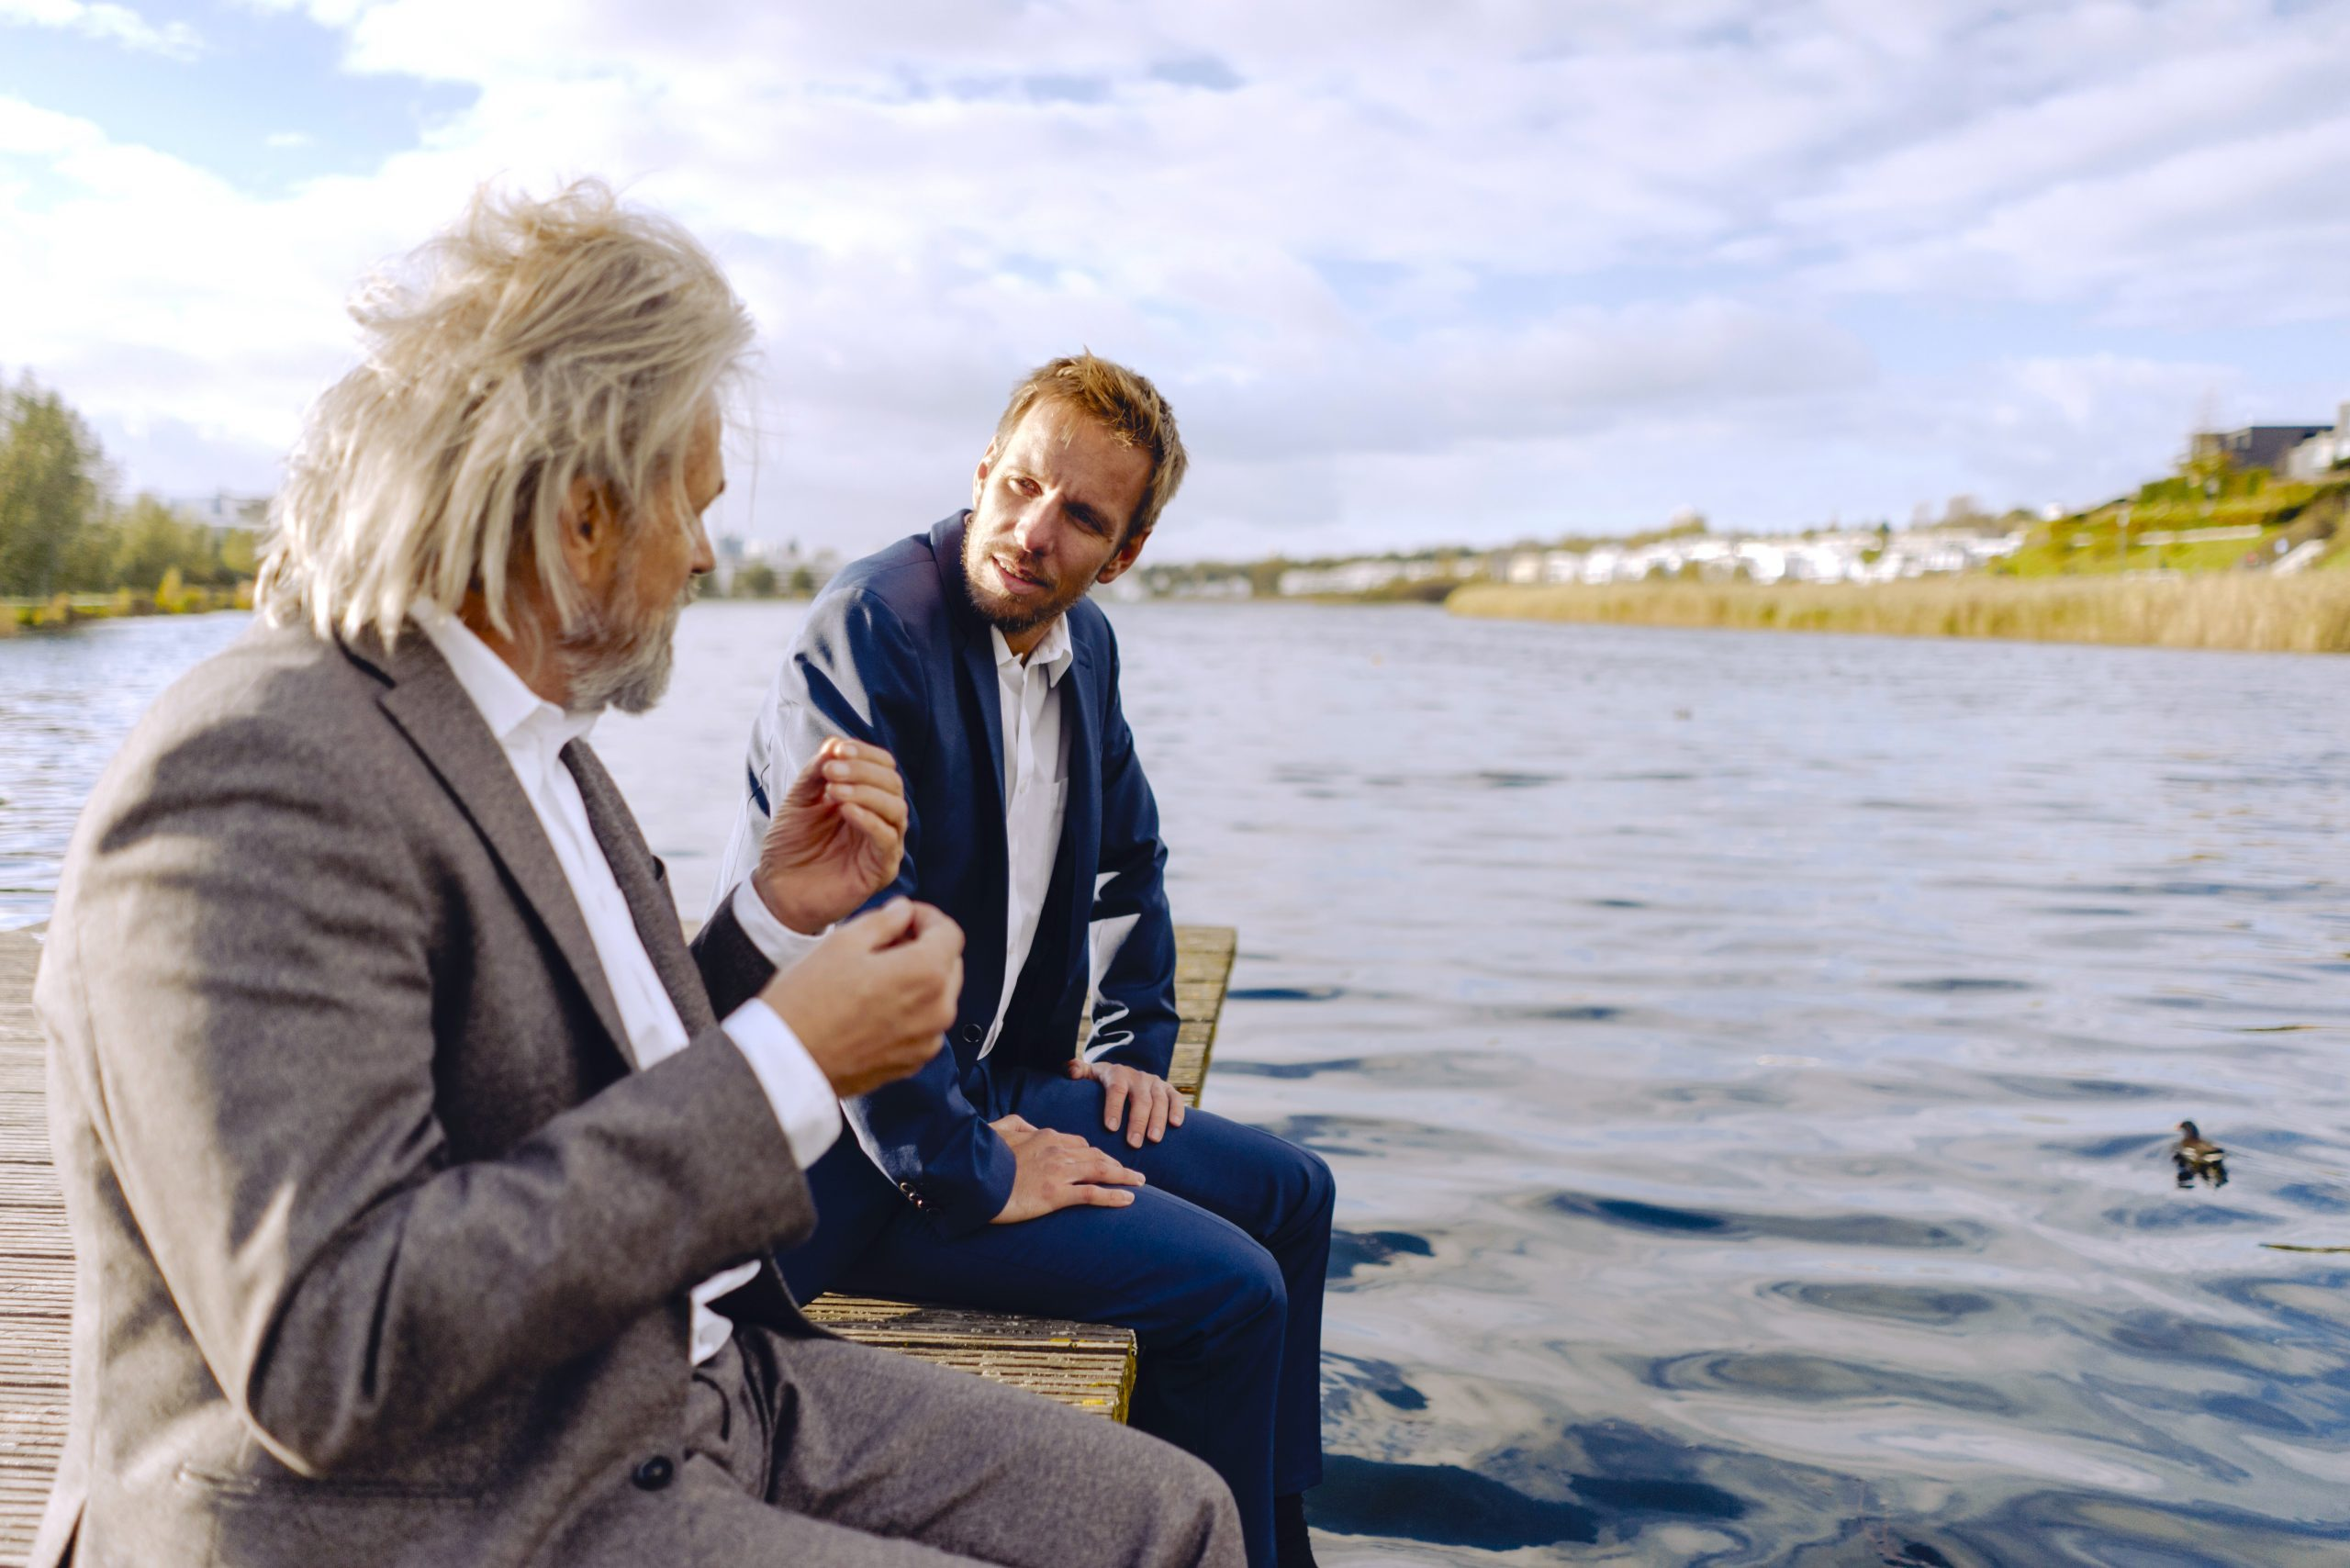 Two businessmen sitting on jetty at a lake talking